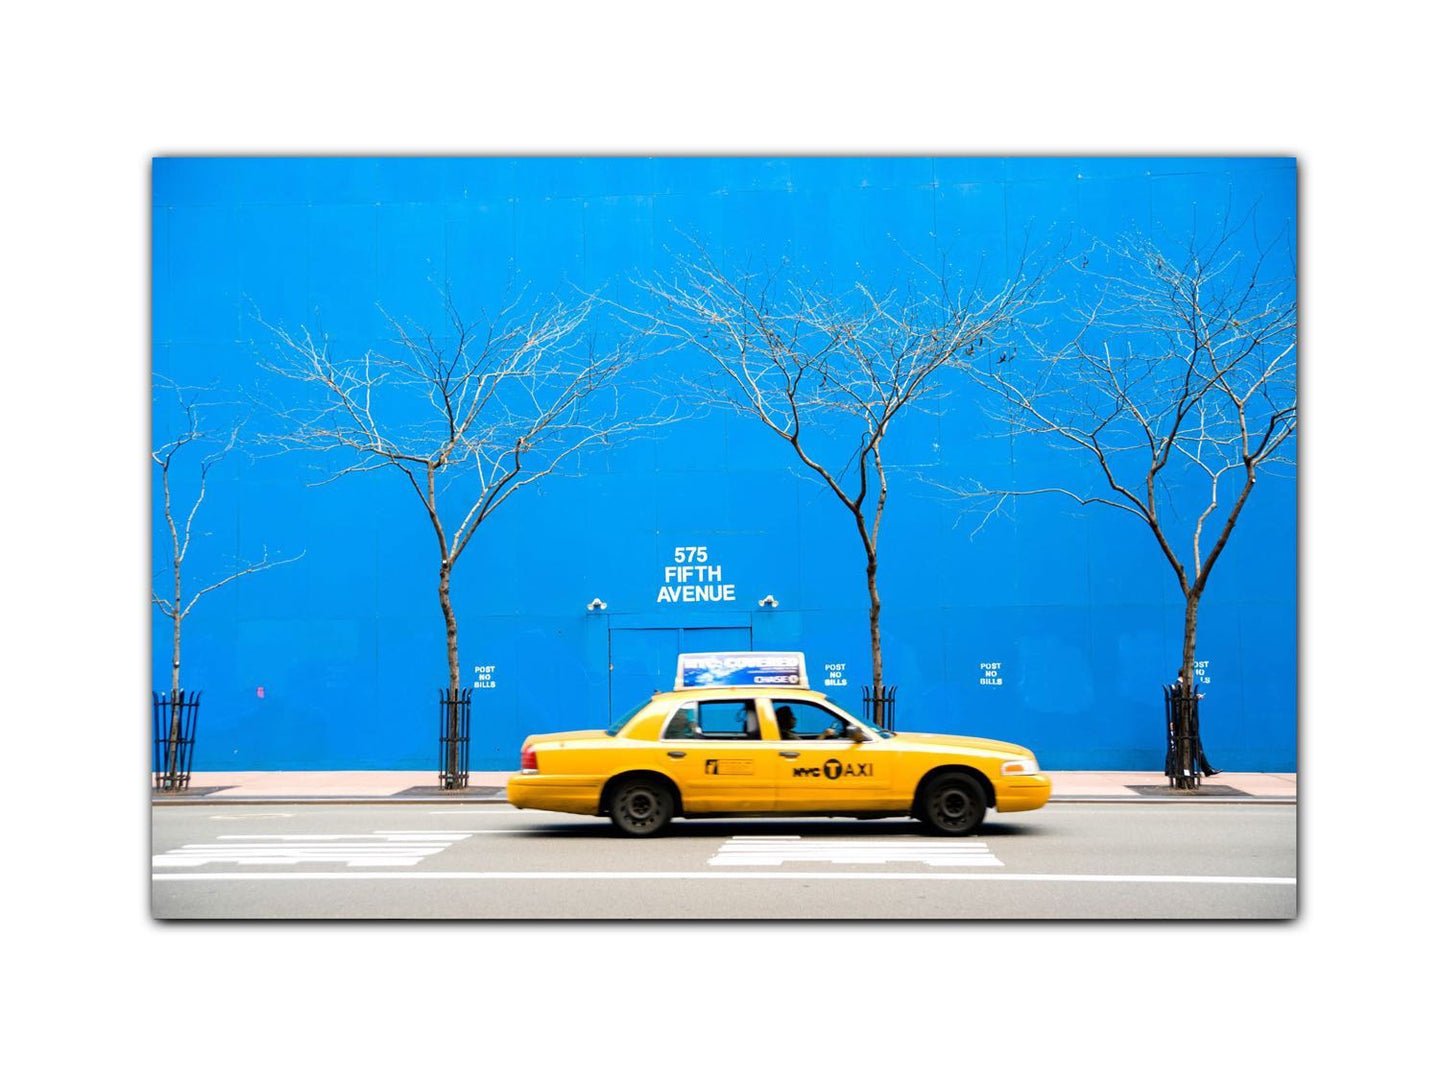 Yellow cab in blue city